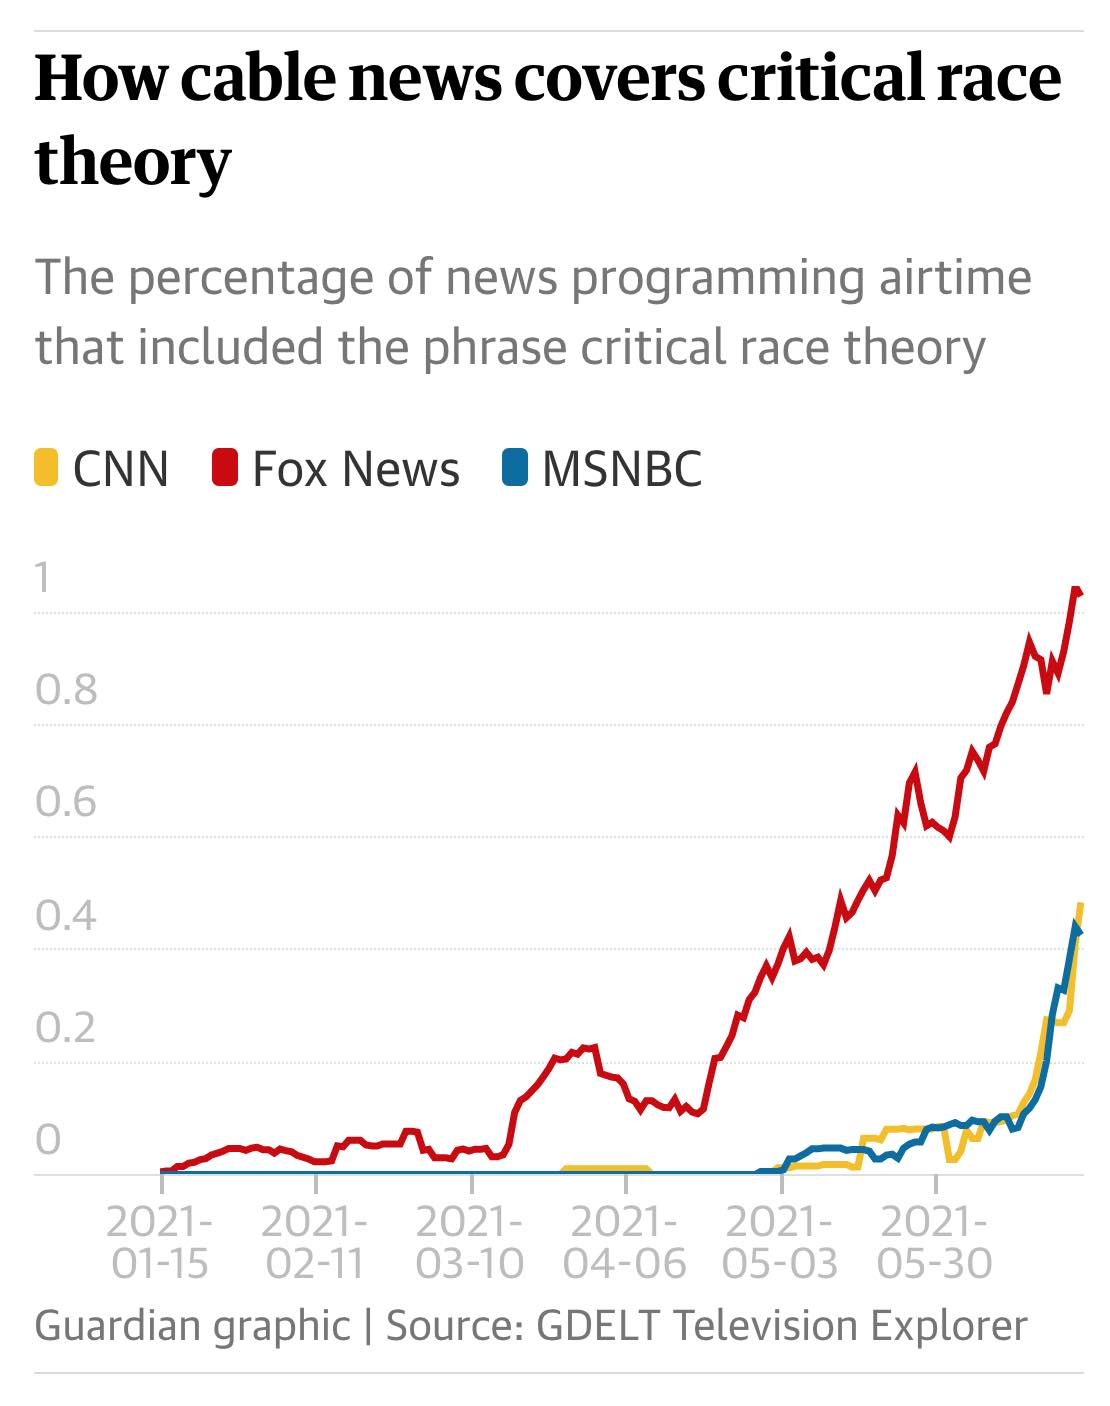 From viral videos to Fox News: how rightwing media fueled the critical race theory panic